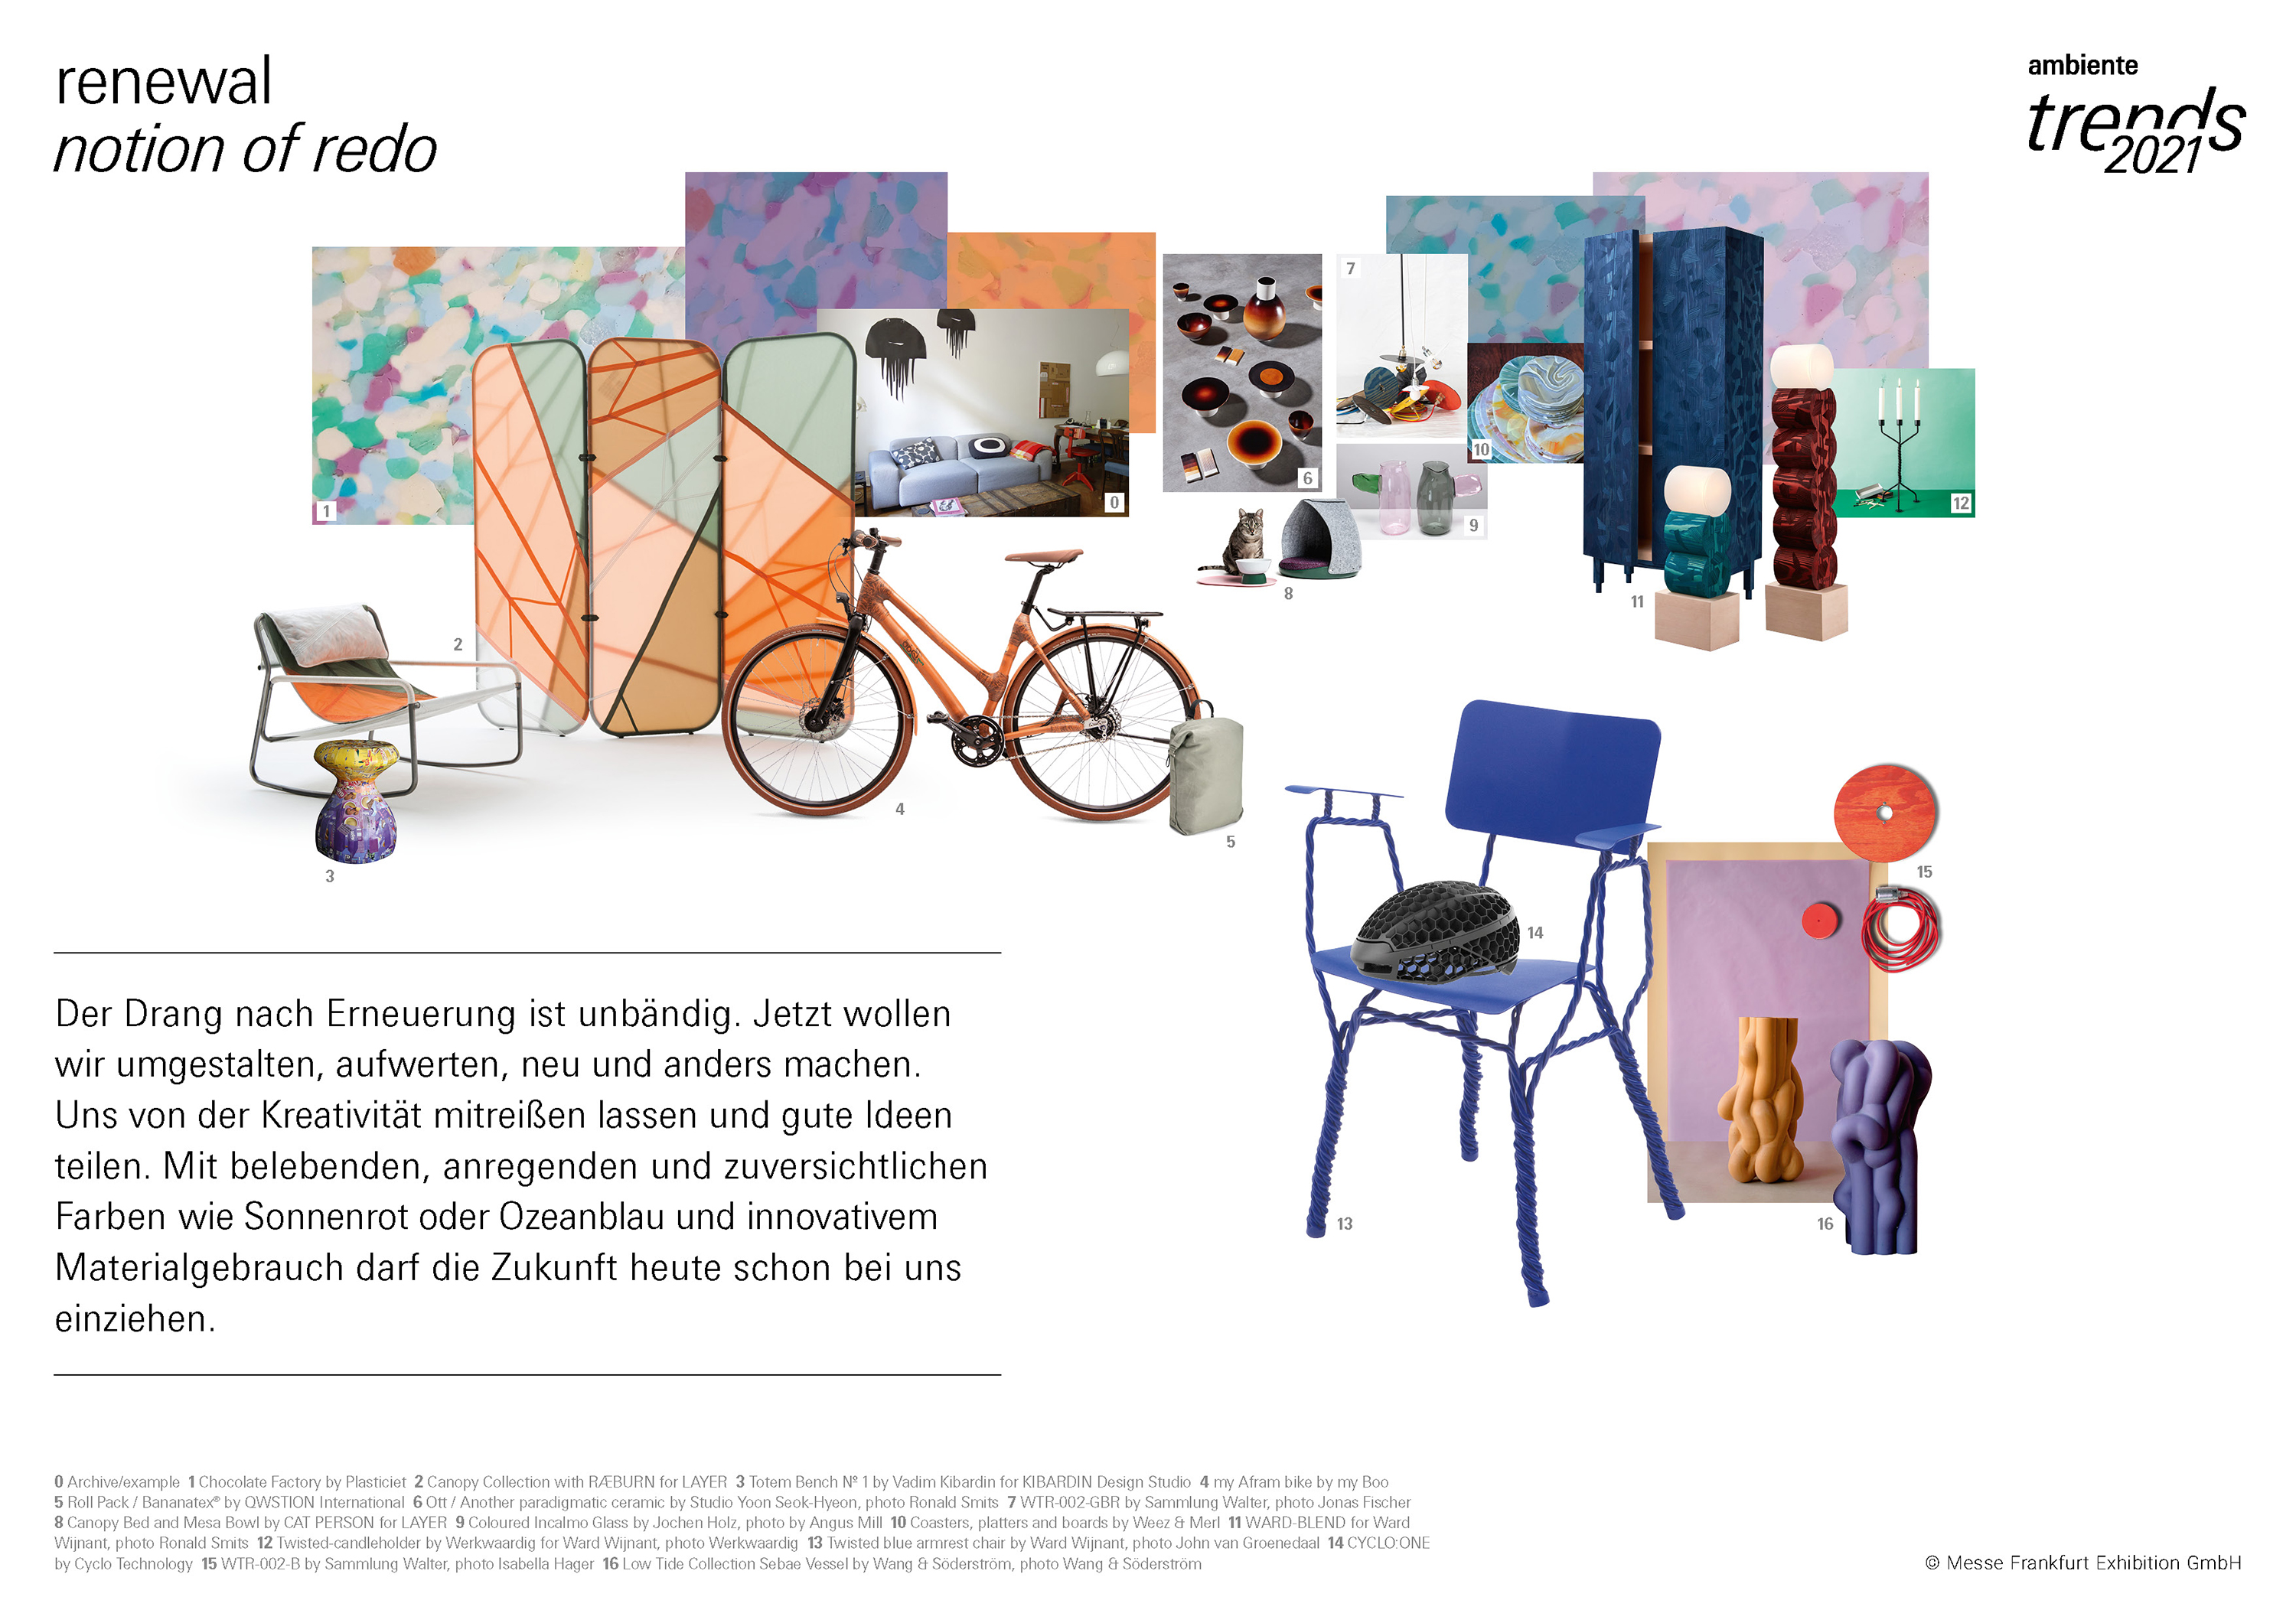 Ambiente Trends 2021 /renewal. notion of redo